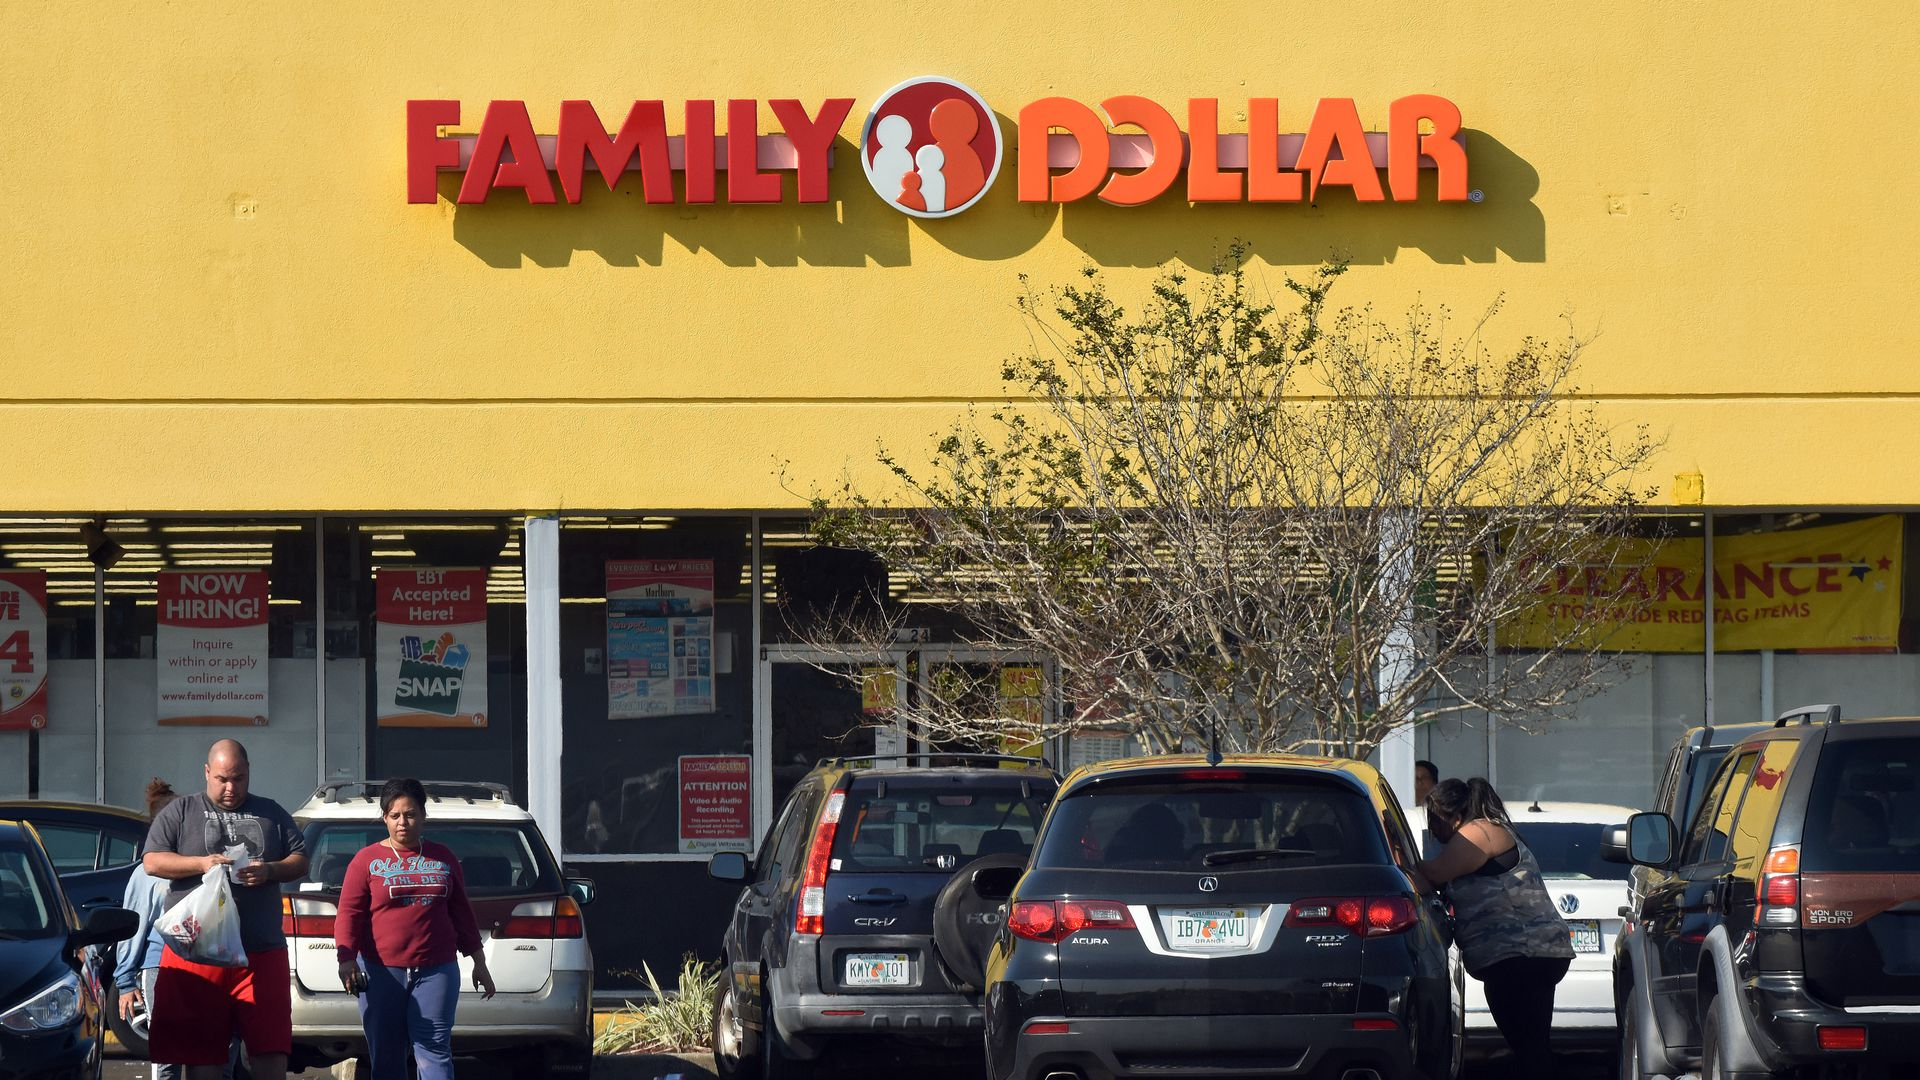 In this image, shoppers walk through the parking lot away from a Family Dollar store.